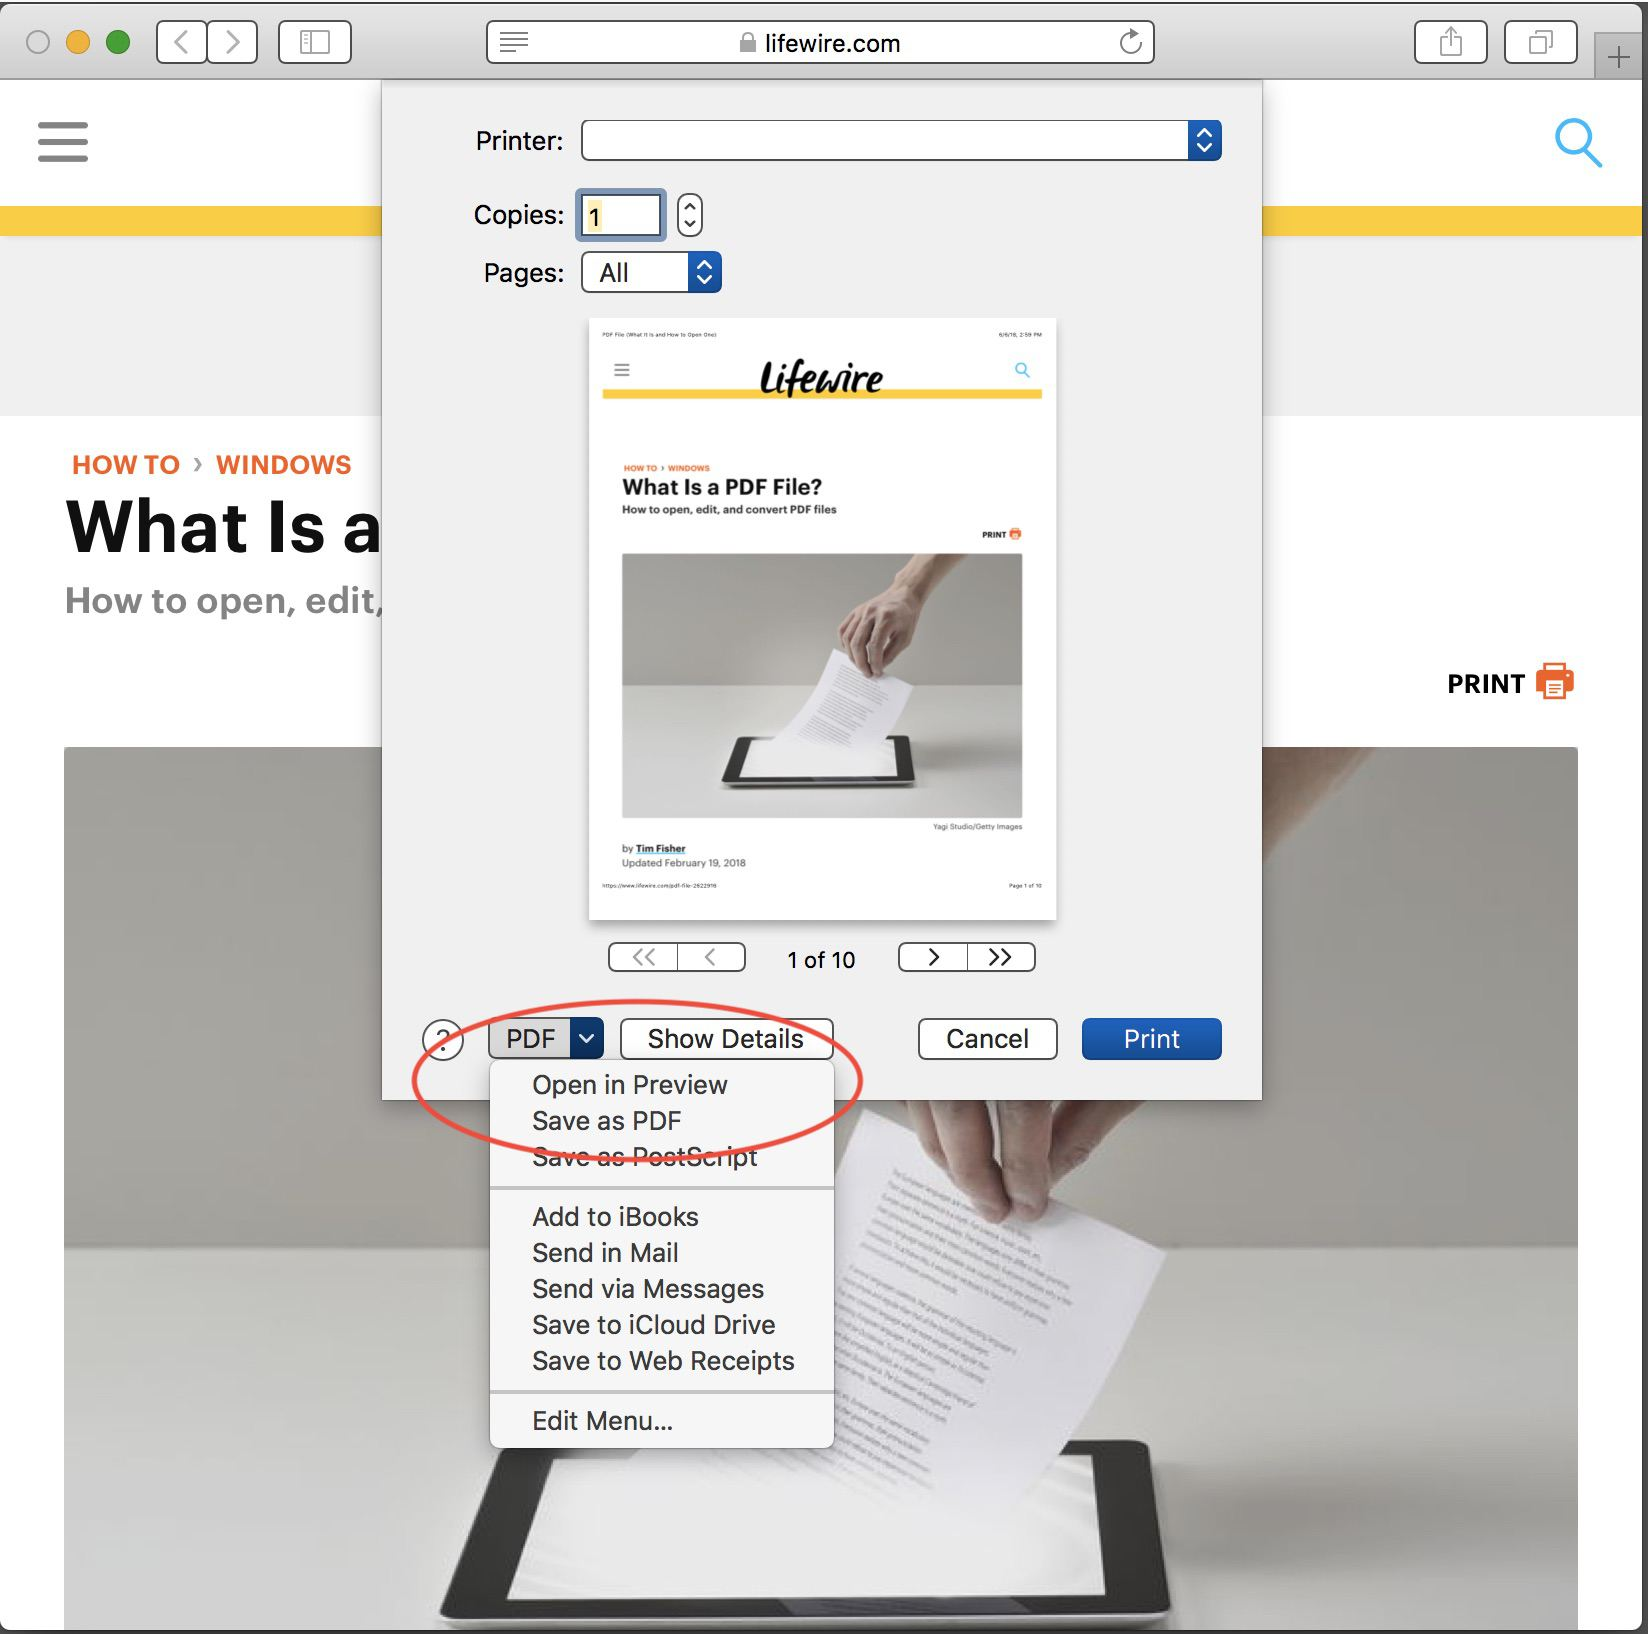 Save your page as a PDF